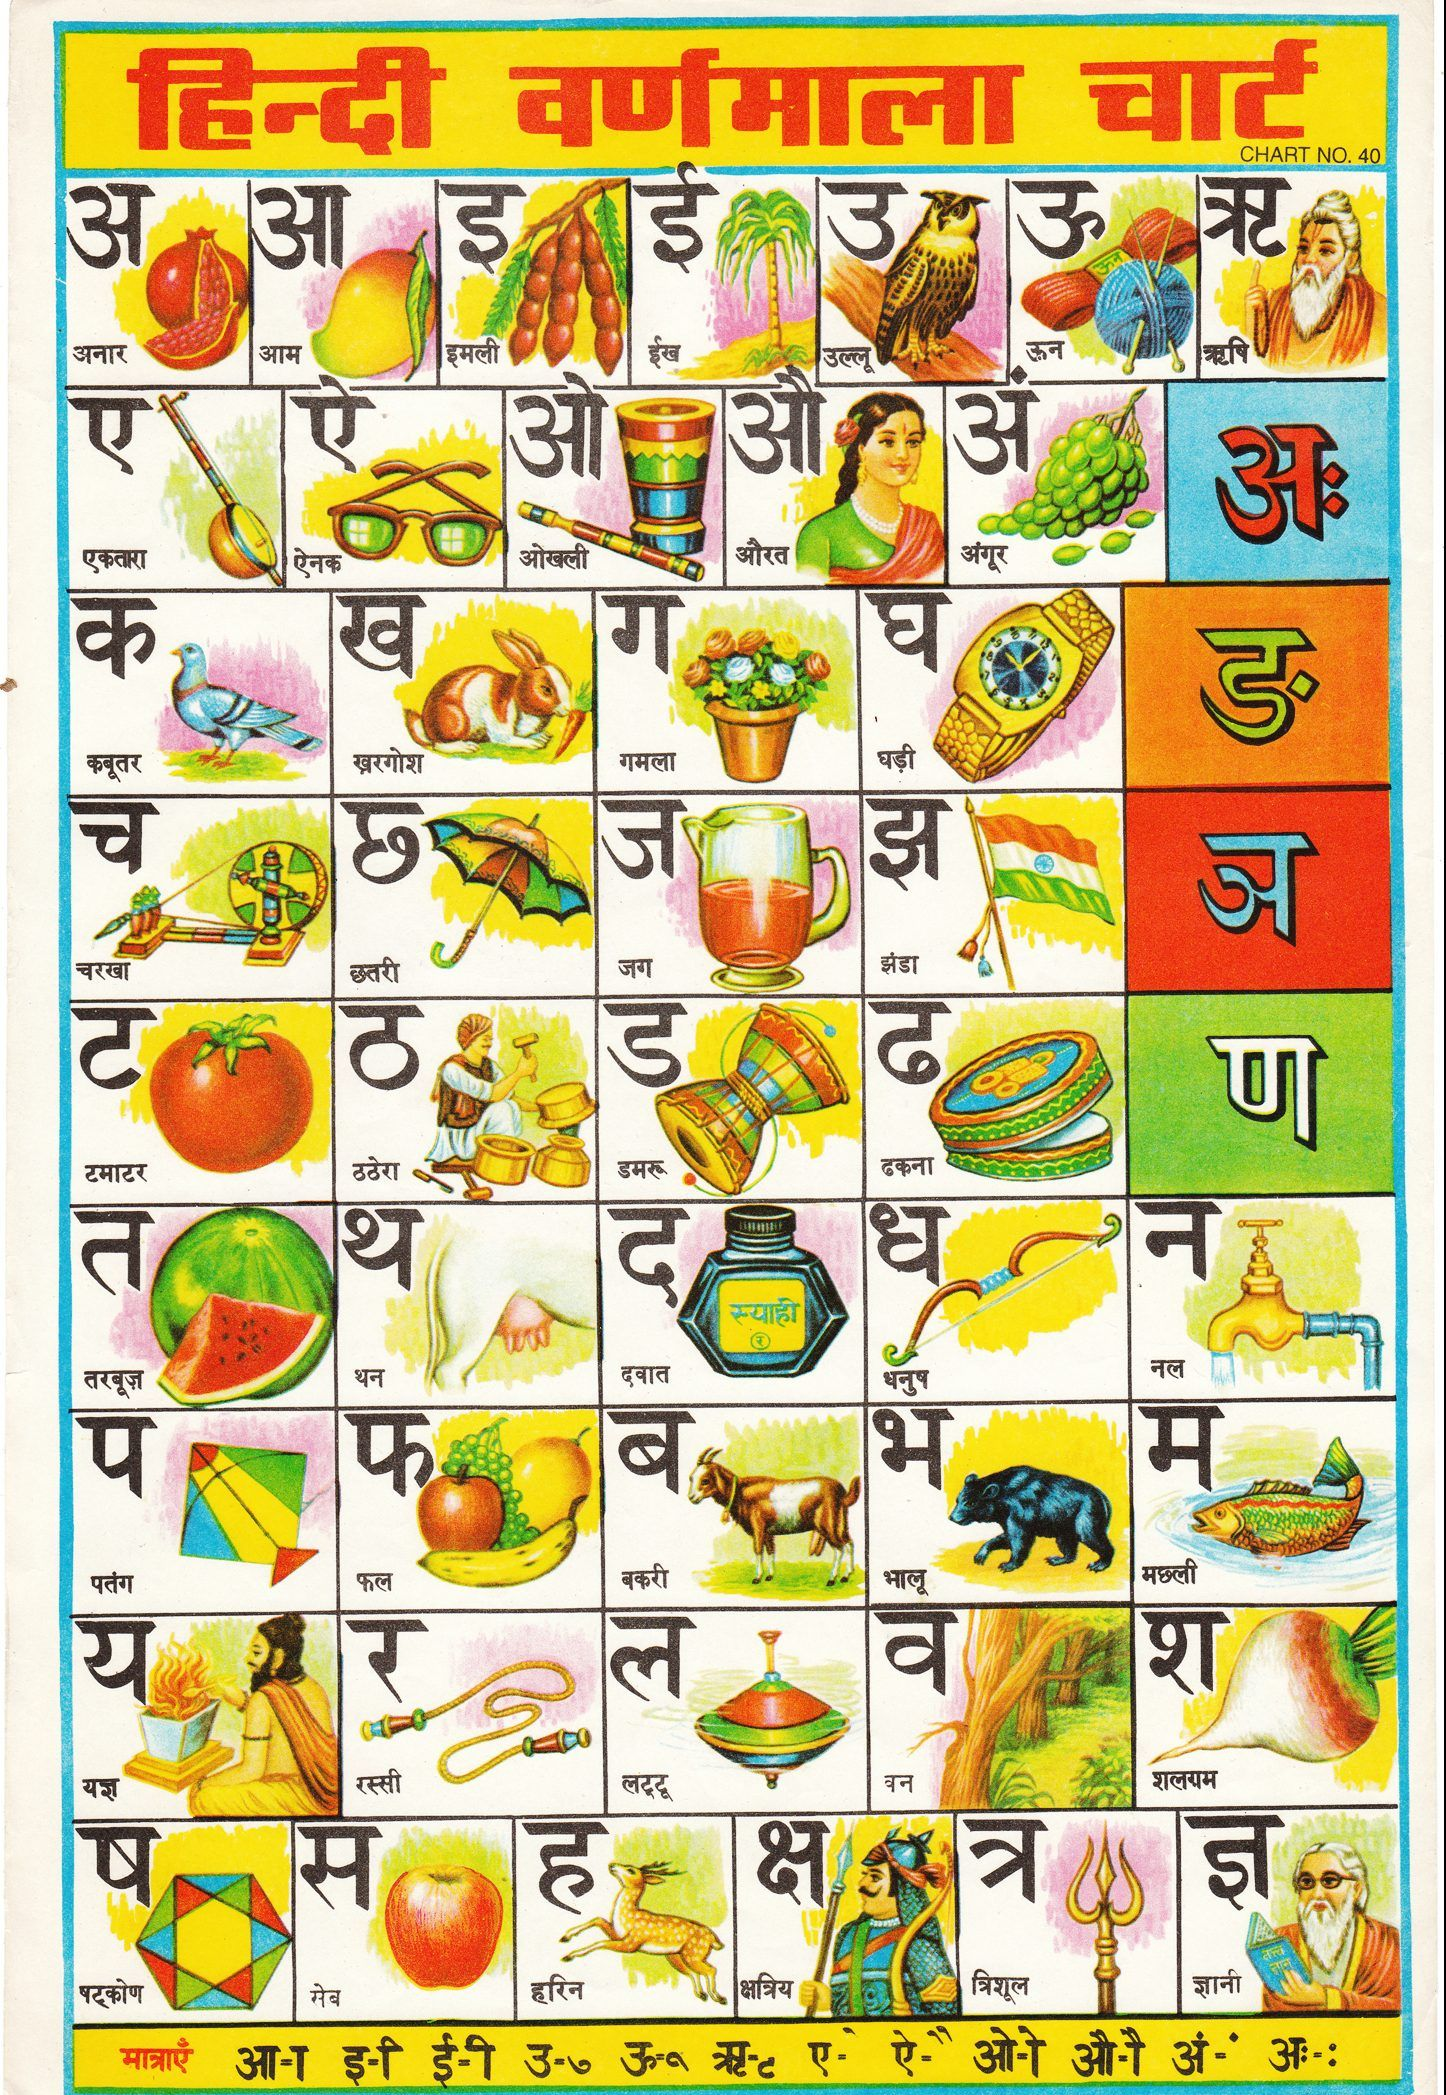 Hindi Aksharmala And Varnamala Chart